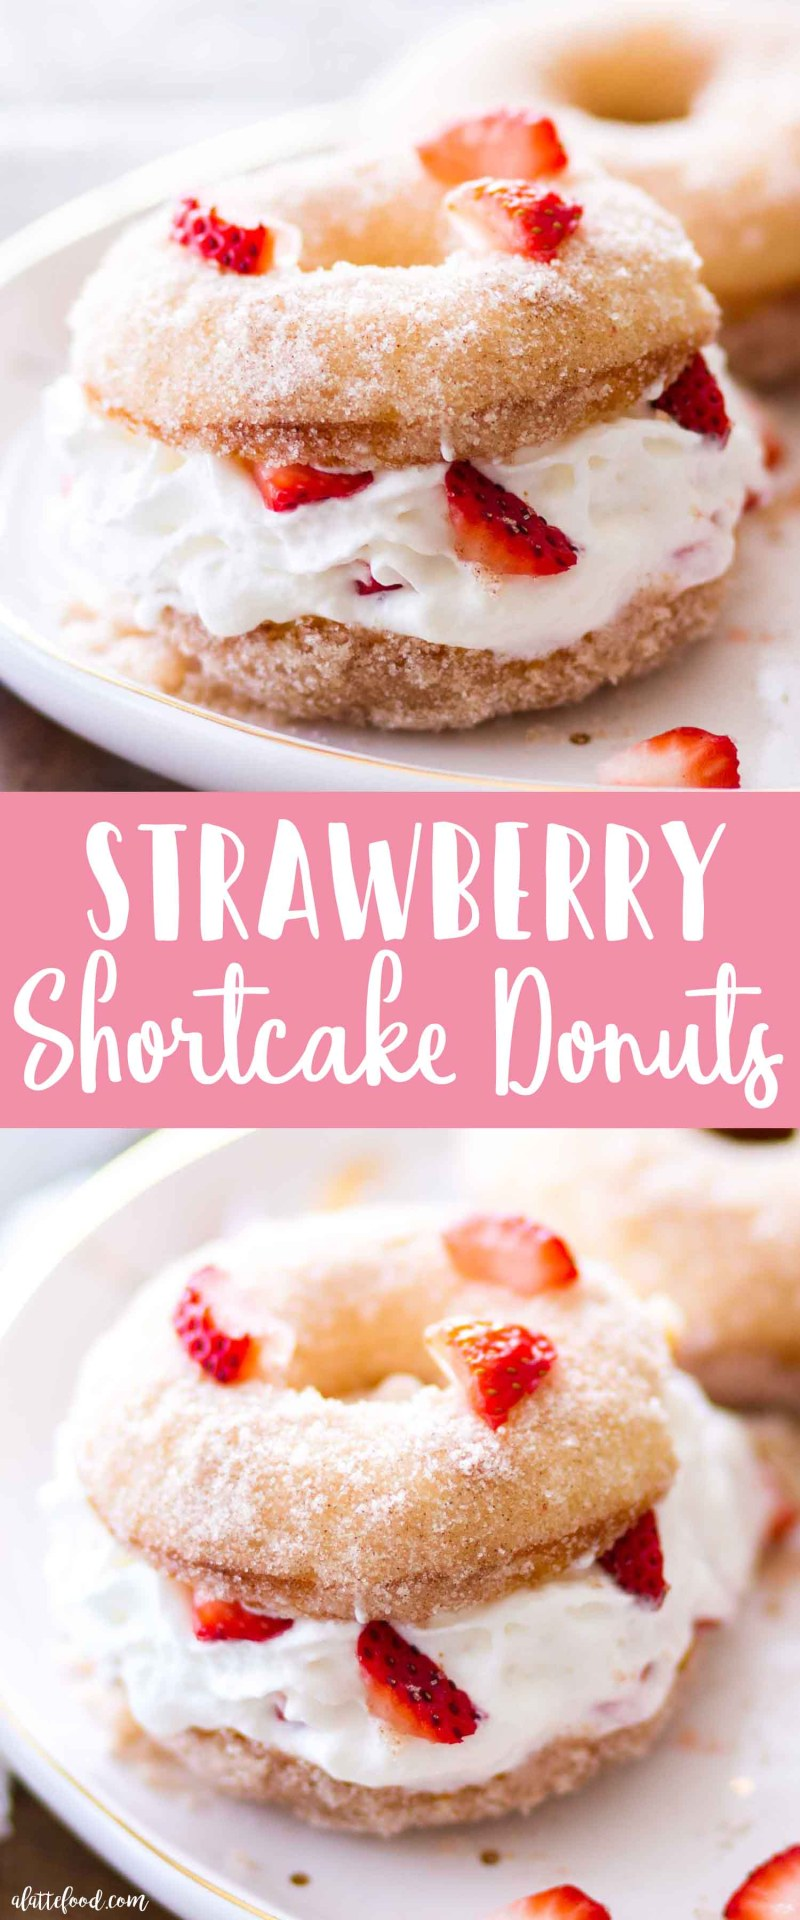 This baked strawberry shortcake donuts recipe is sweet, simple, and a fun twist on the classic strawberry shortcake recipe! These baked cake donuts are rolled in cinnamon sugar, cut in half, and filled with fresh strawberries and whipped cream. Homemade baked donuts make a great Easter brunch, breakfast, or dessert recipe!